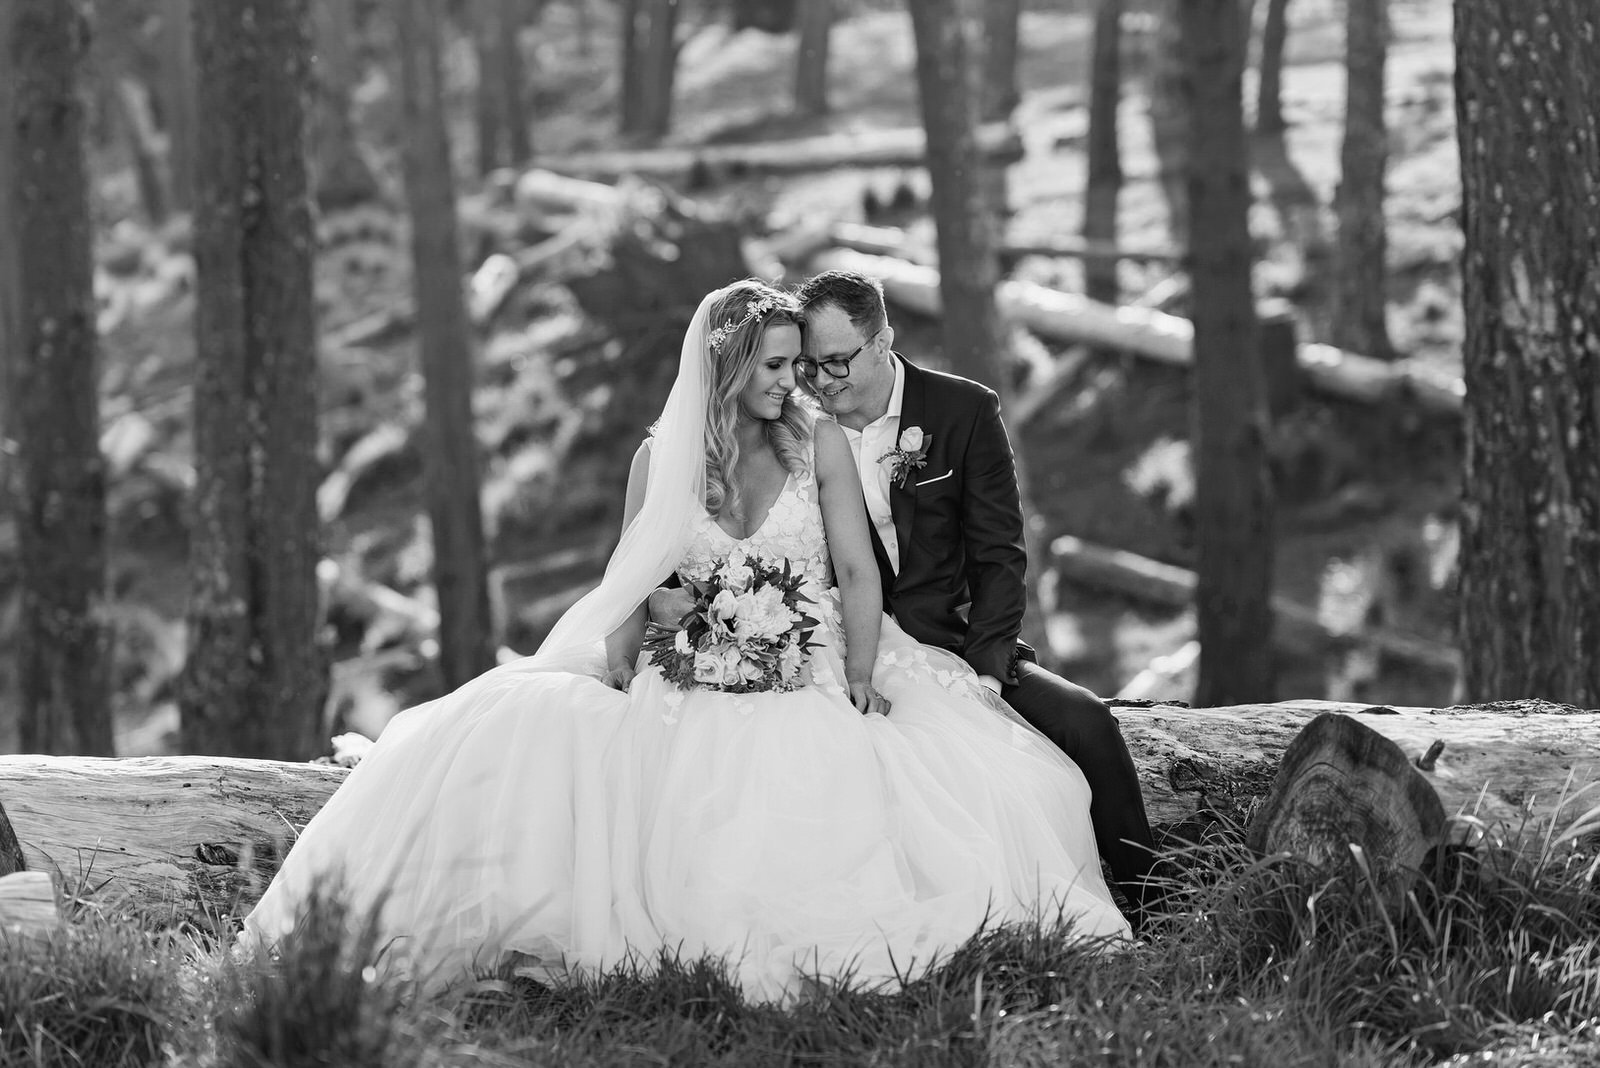 newfound-at-glendowie-auckland-wedding-photographers-136